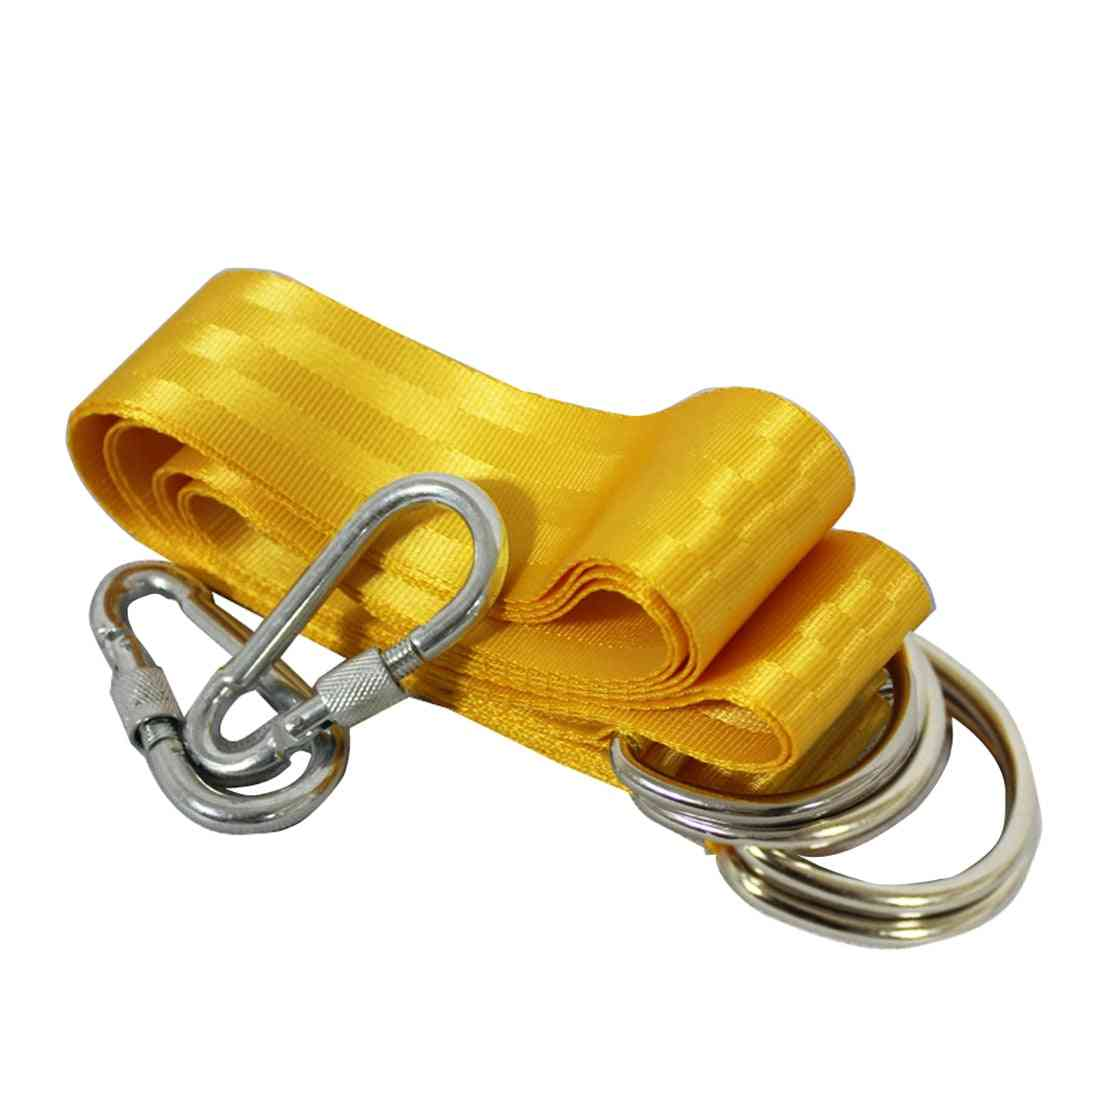 Outdoor Swing - X Rope Lock Tie Strength Polyester Webbing Straps Safe